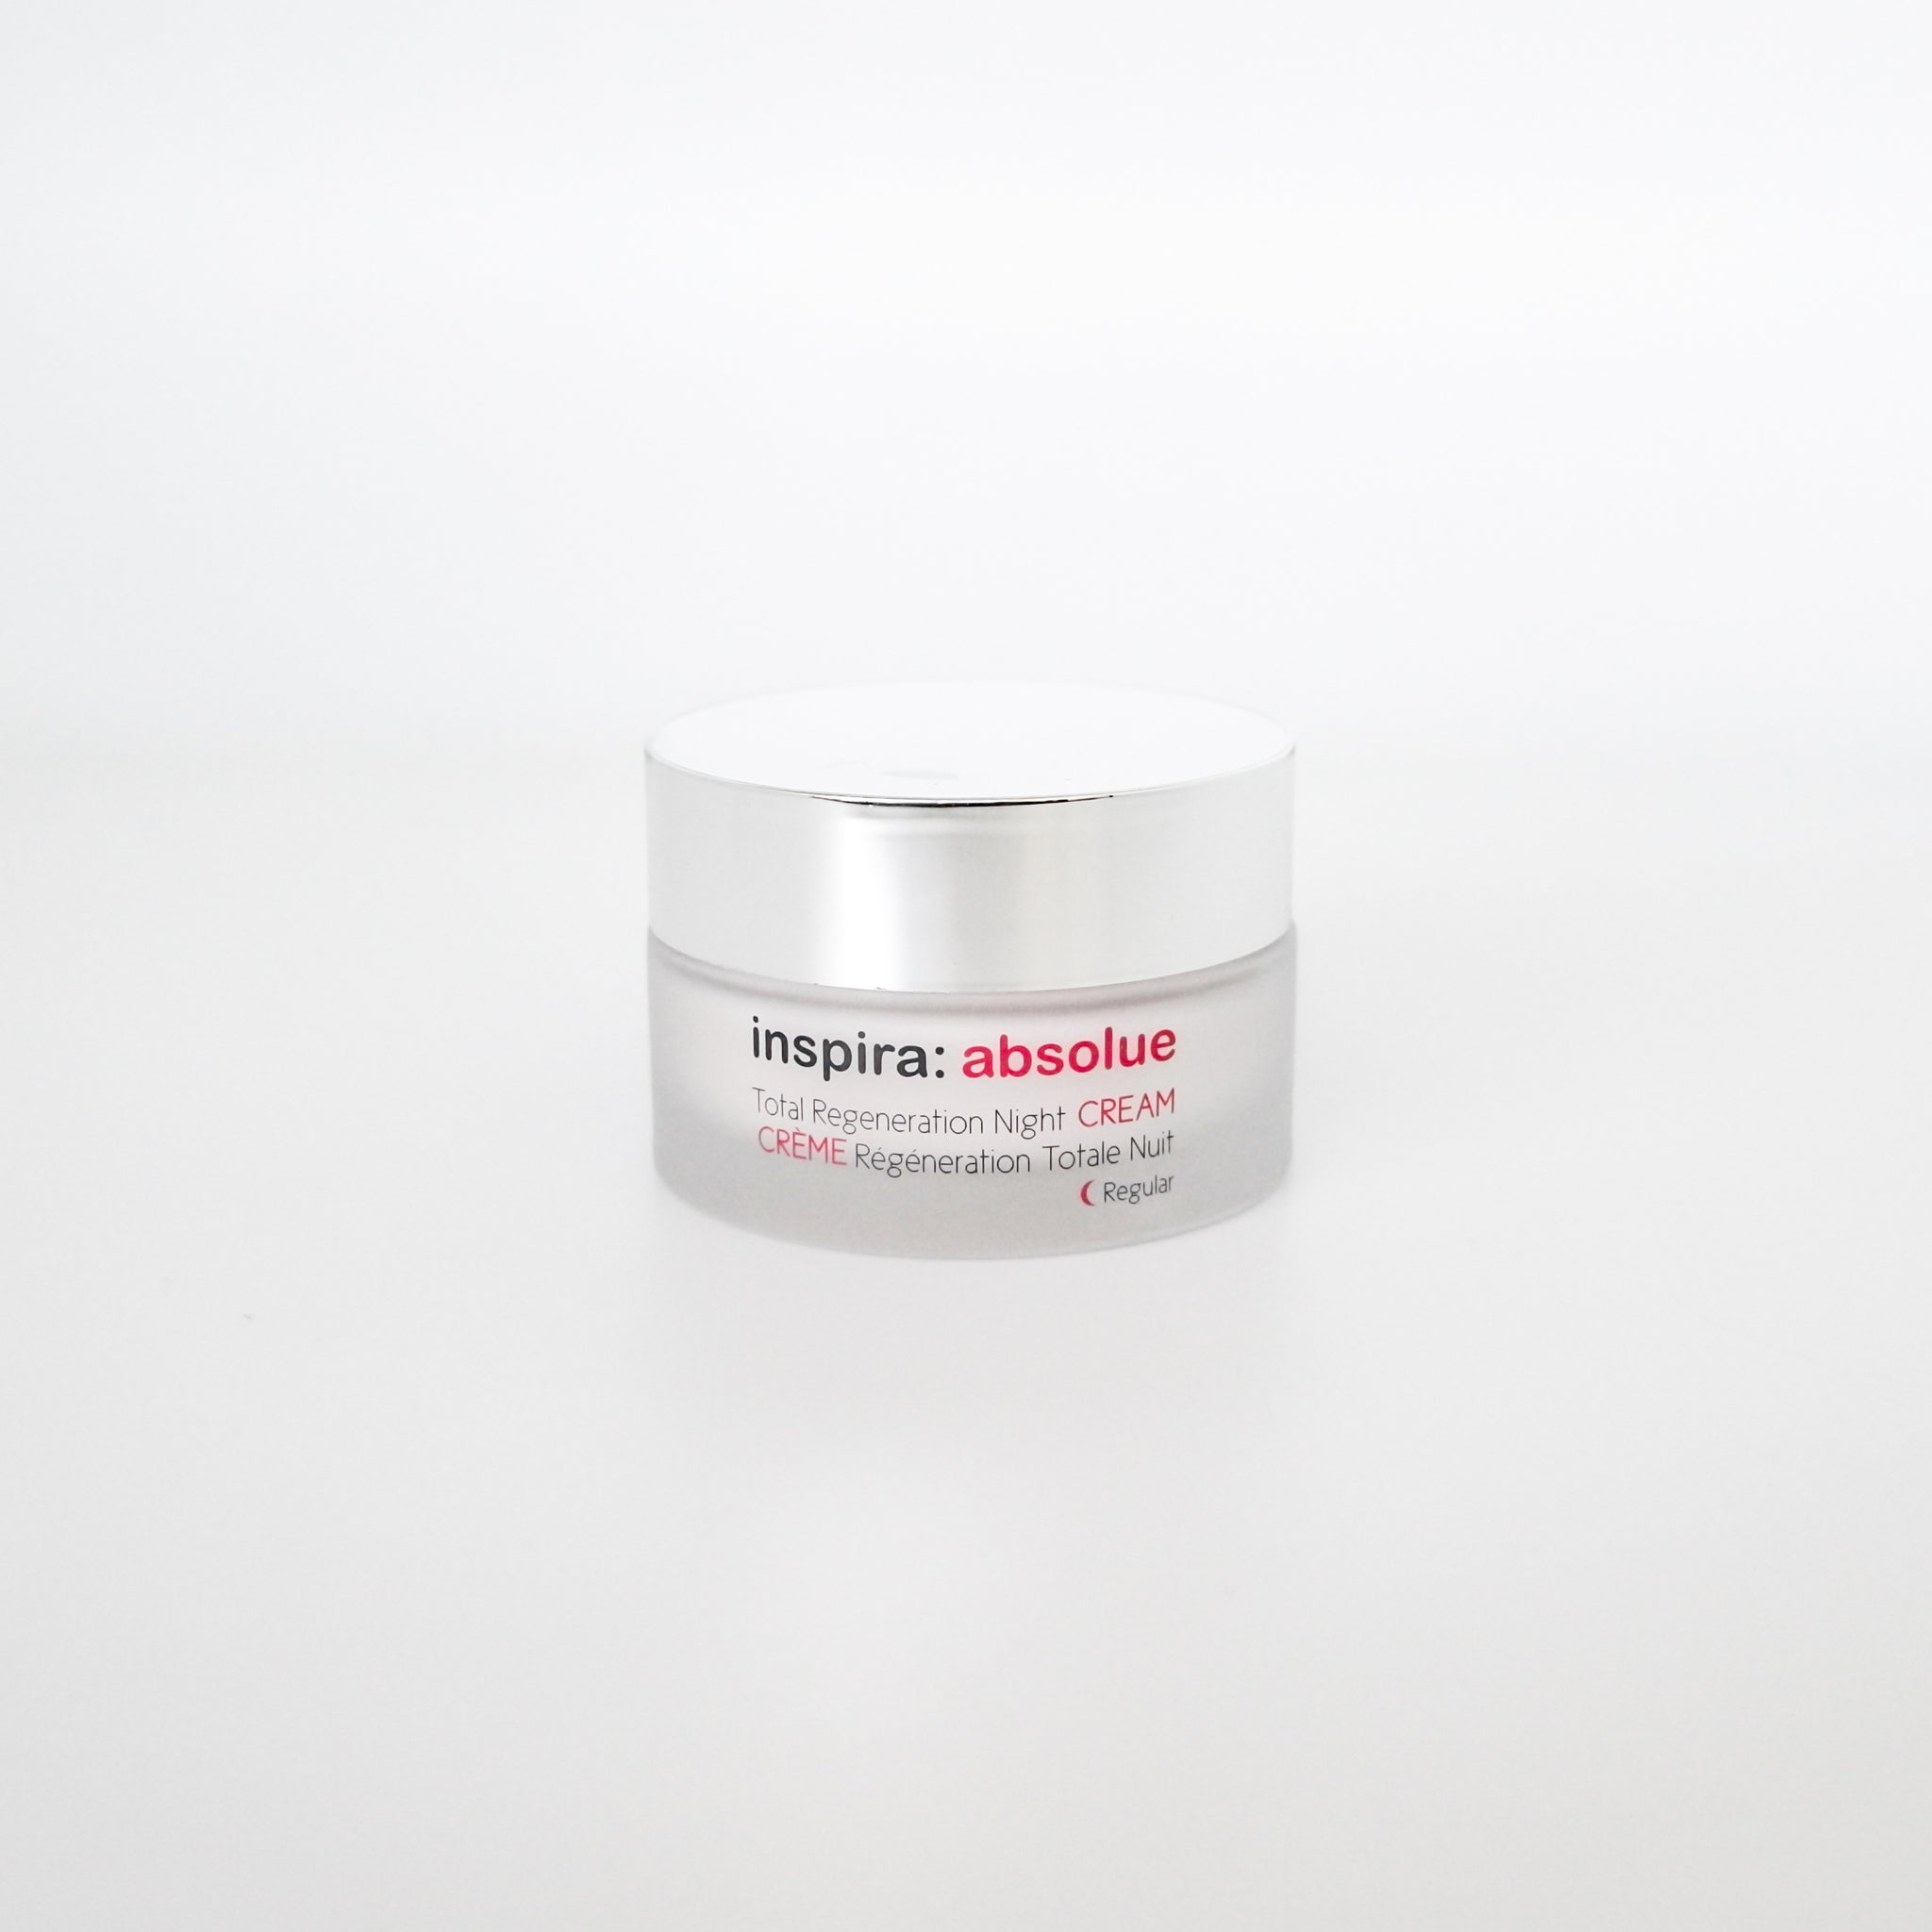 inspira:absolue Regeneration Night Cream, Moisturizing, Inspira Absolue - Astrid Wylde